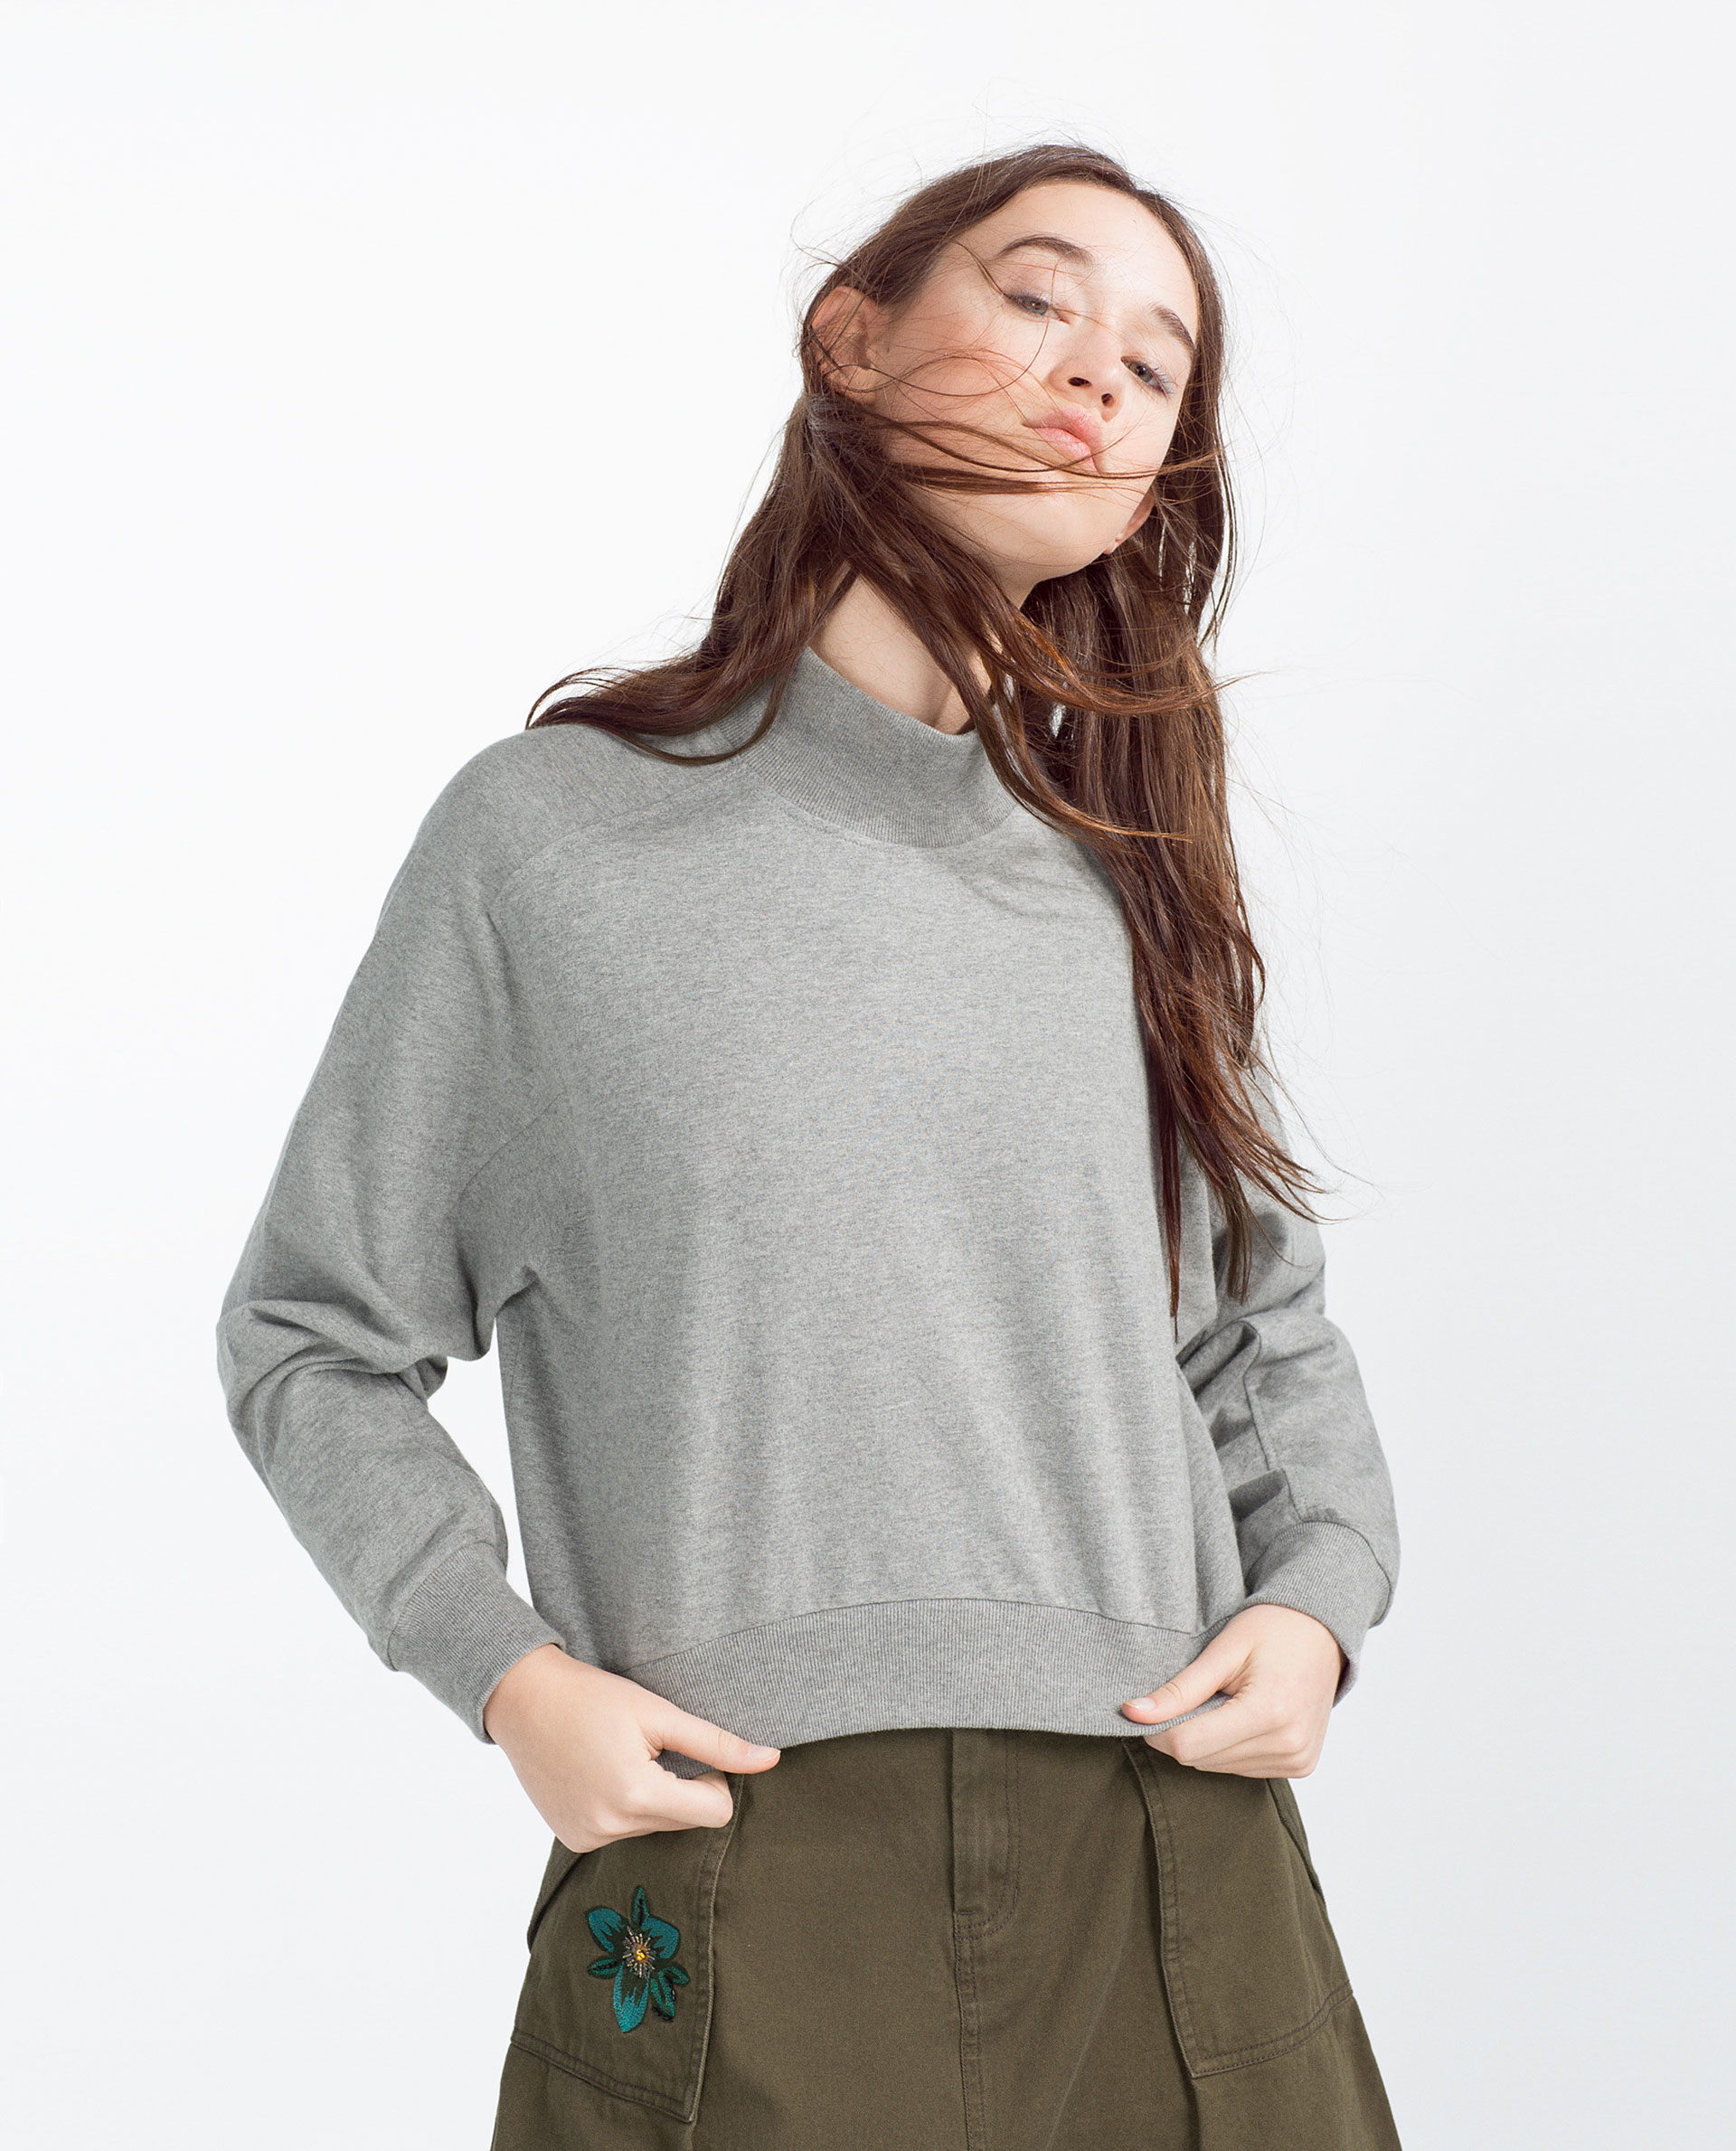 Zara Cropped Grey Sweater 84